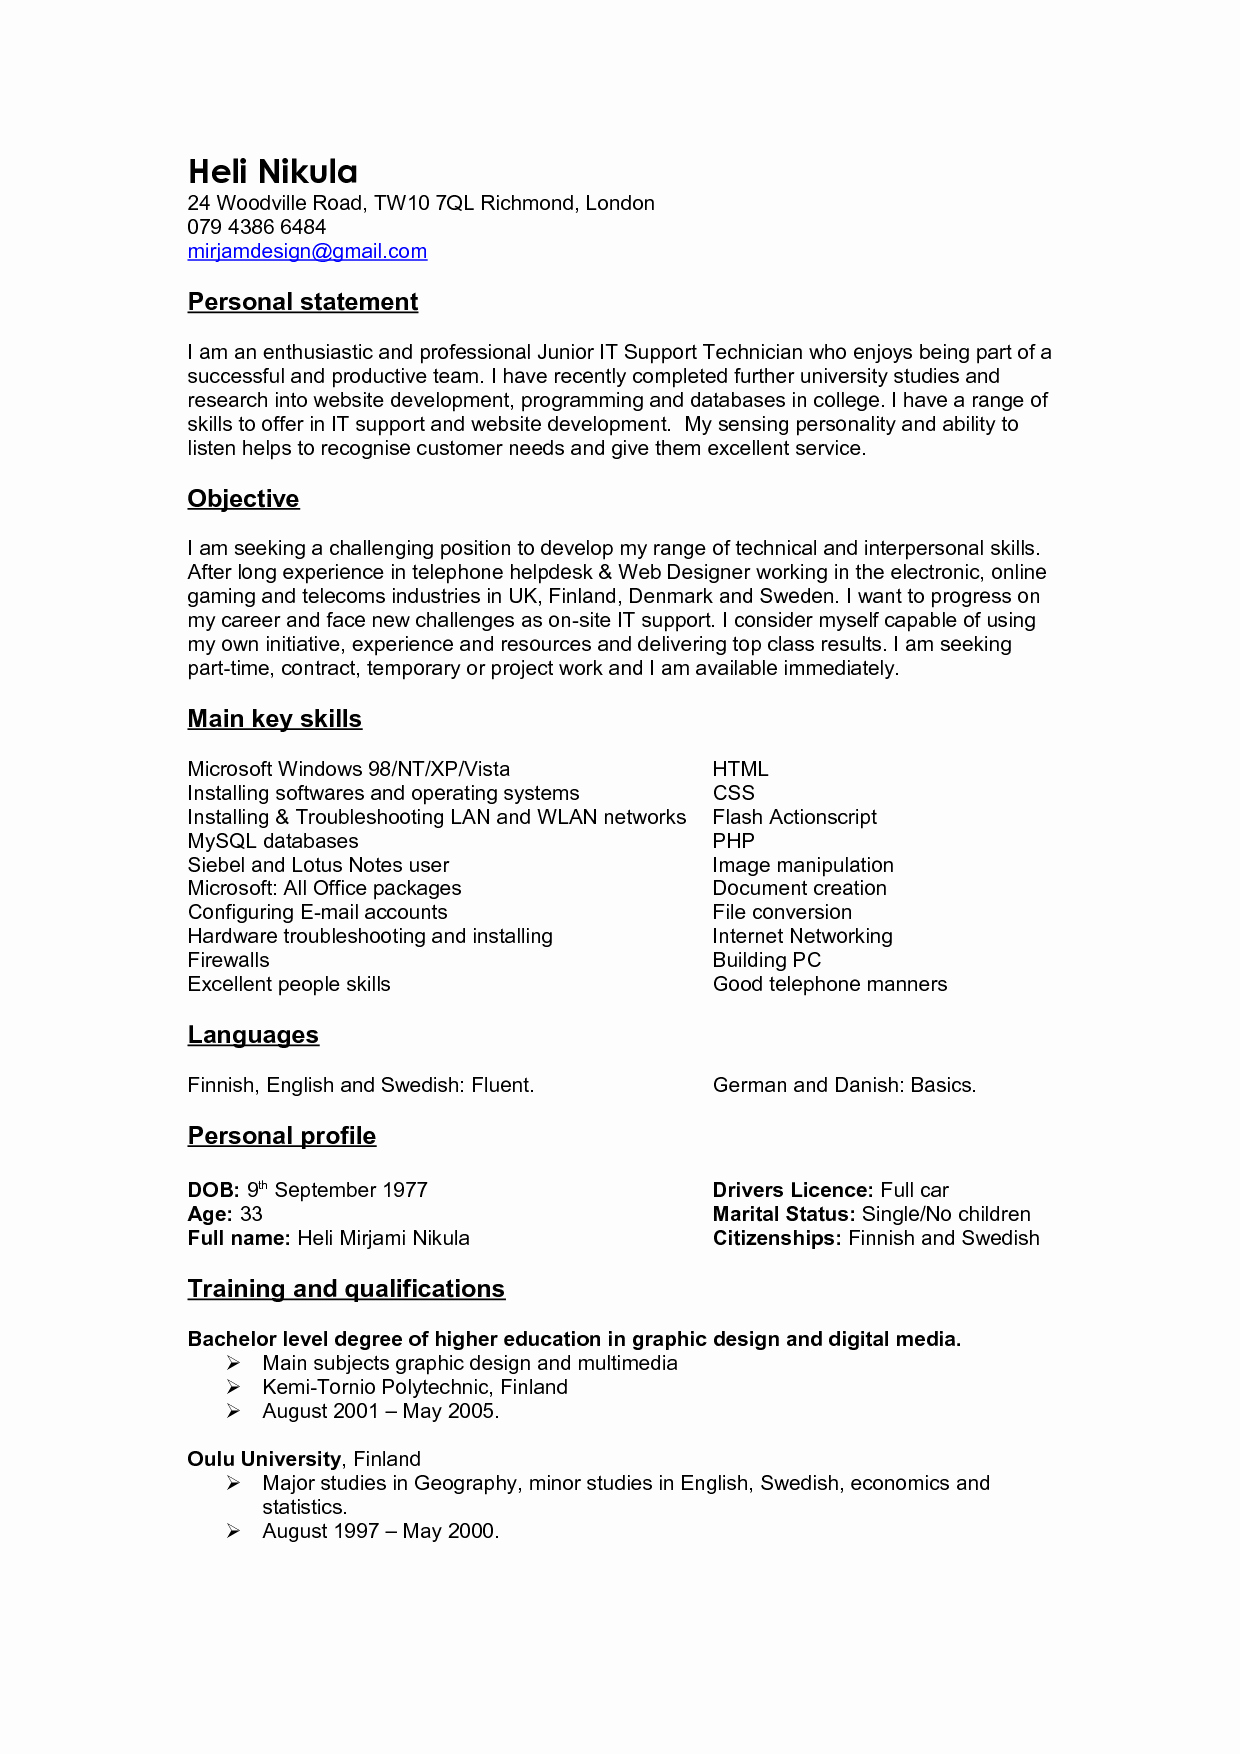 Sample Personal Branding Statements Awesome Personal Branding Statement Resume Examples